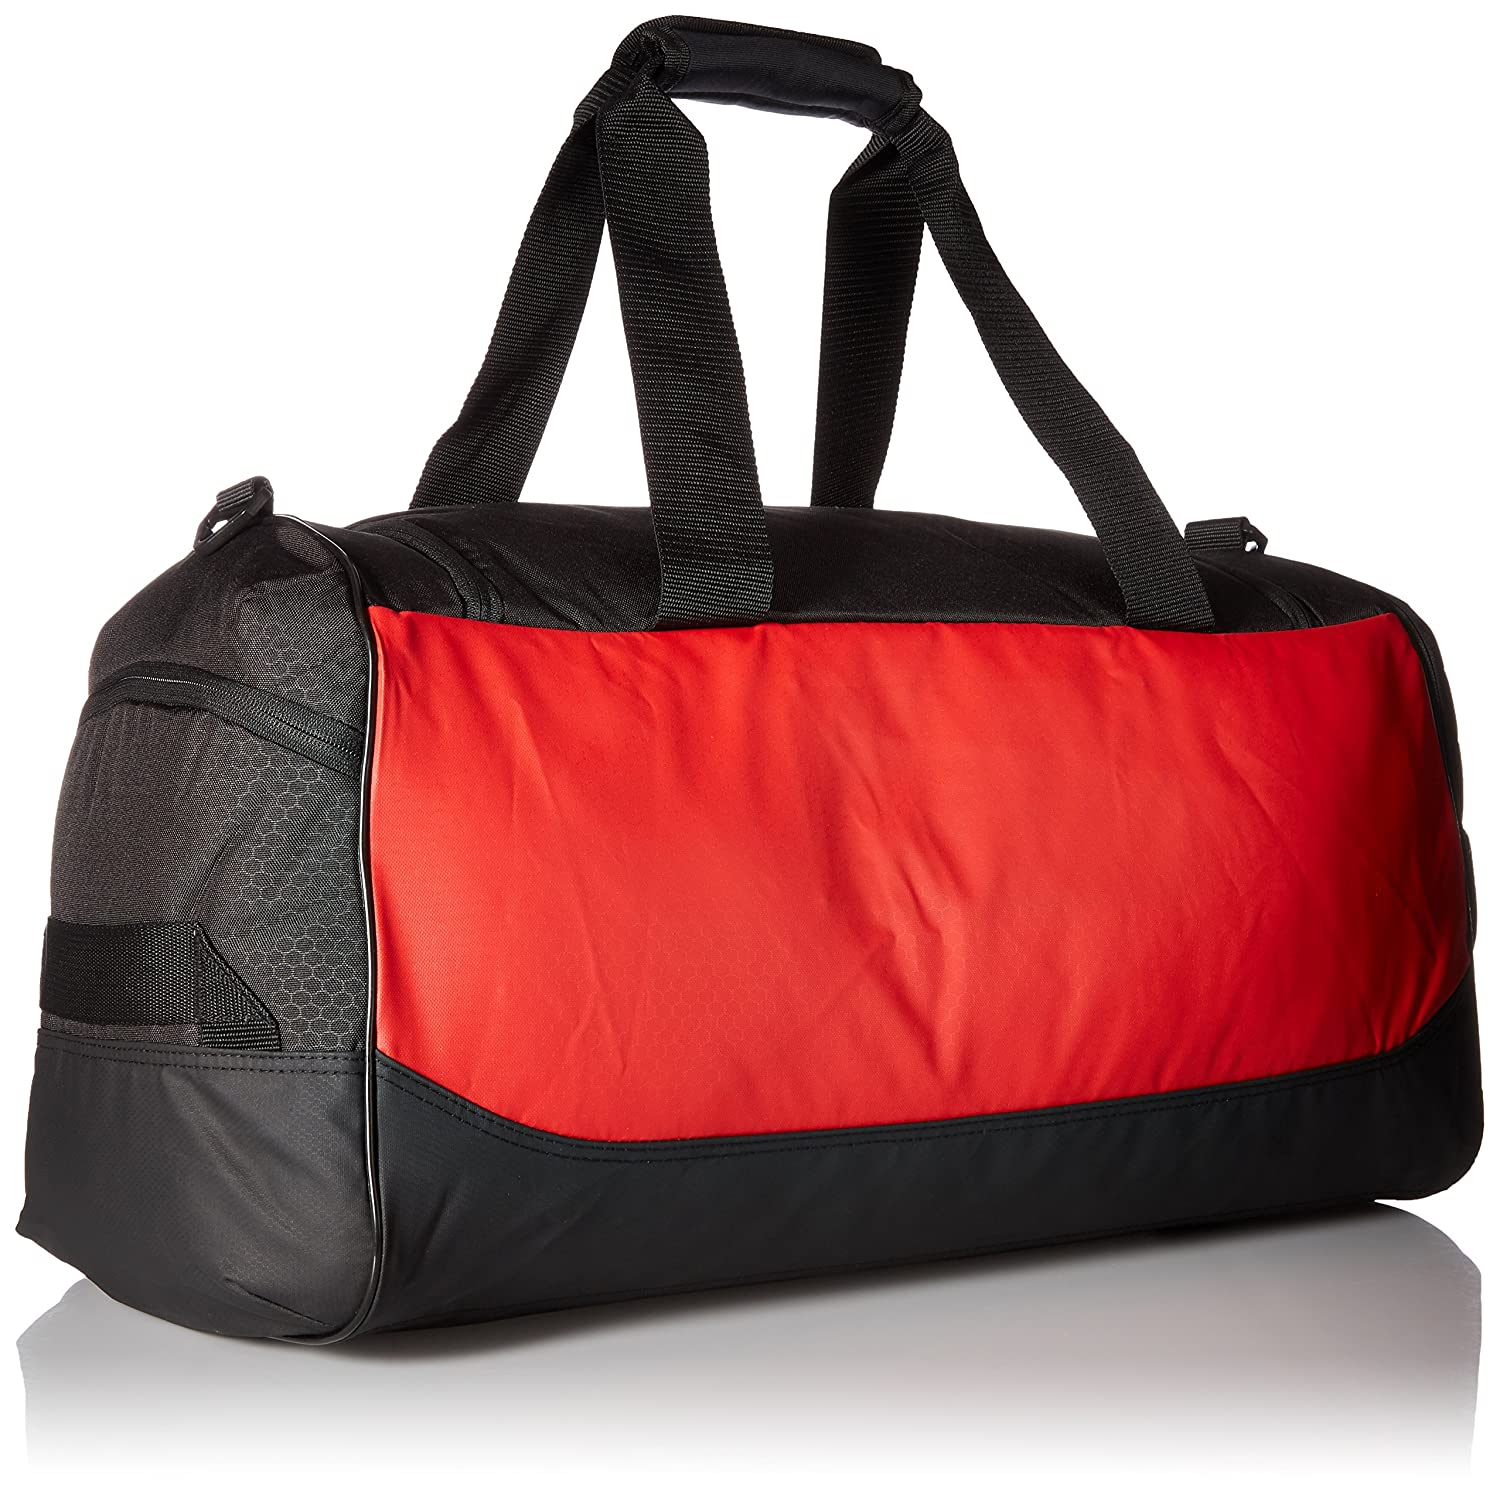 d50e83d7a8 adidas Team Issue Duffel Bag  Amazon.in  Bags